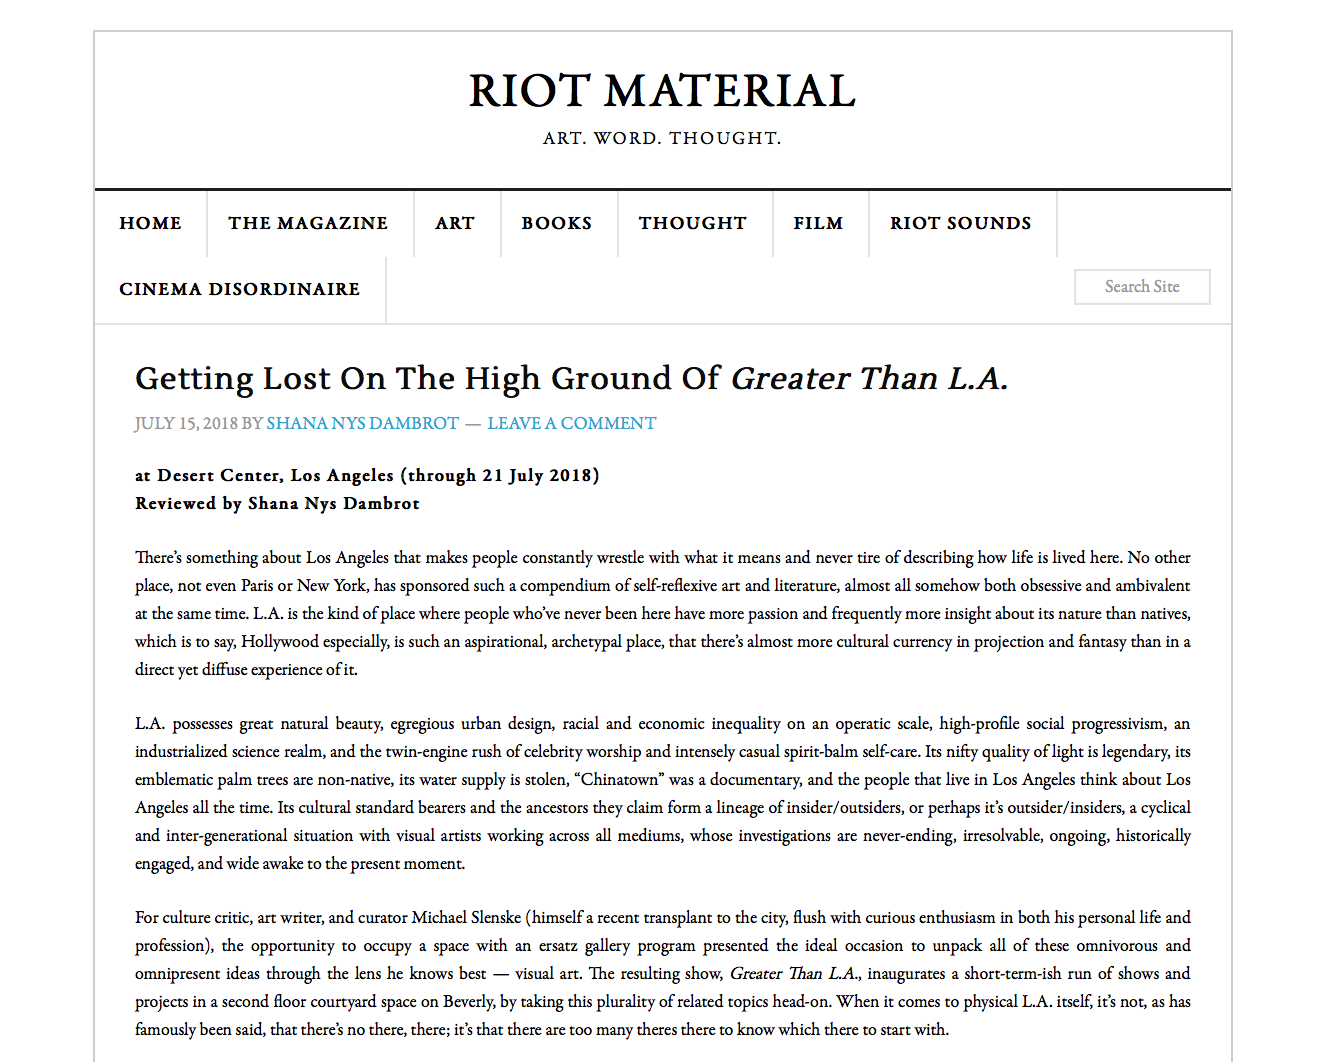 RIOT MATERIAL: GETTING LOST/JULY 15, 2018